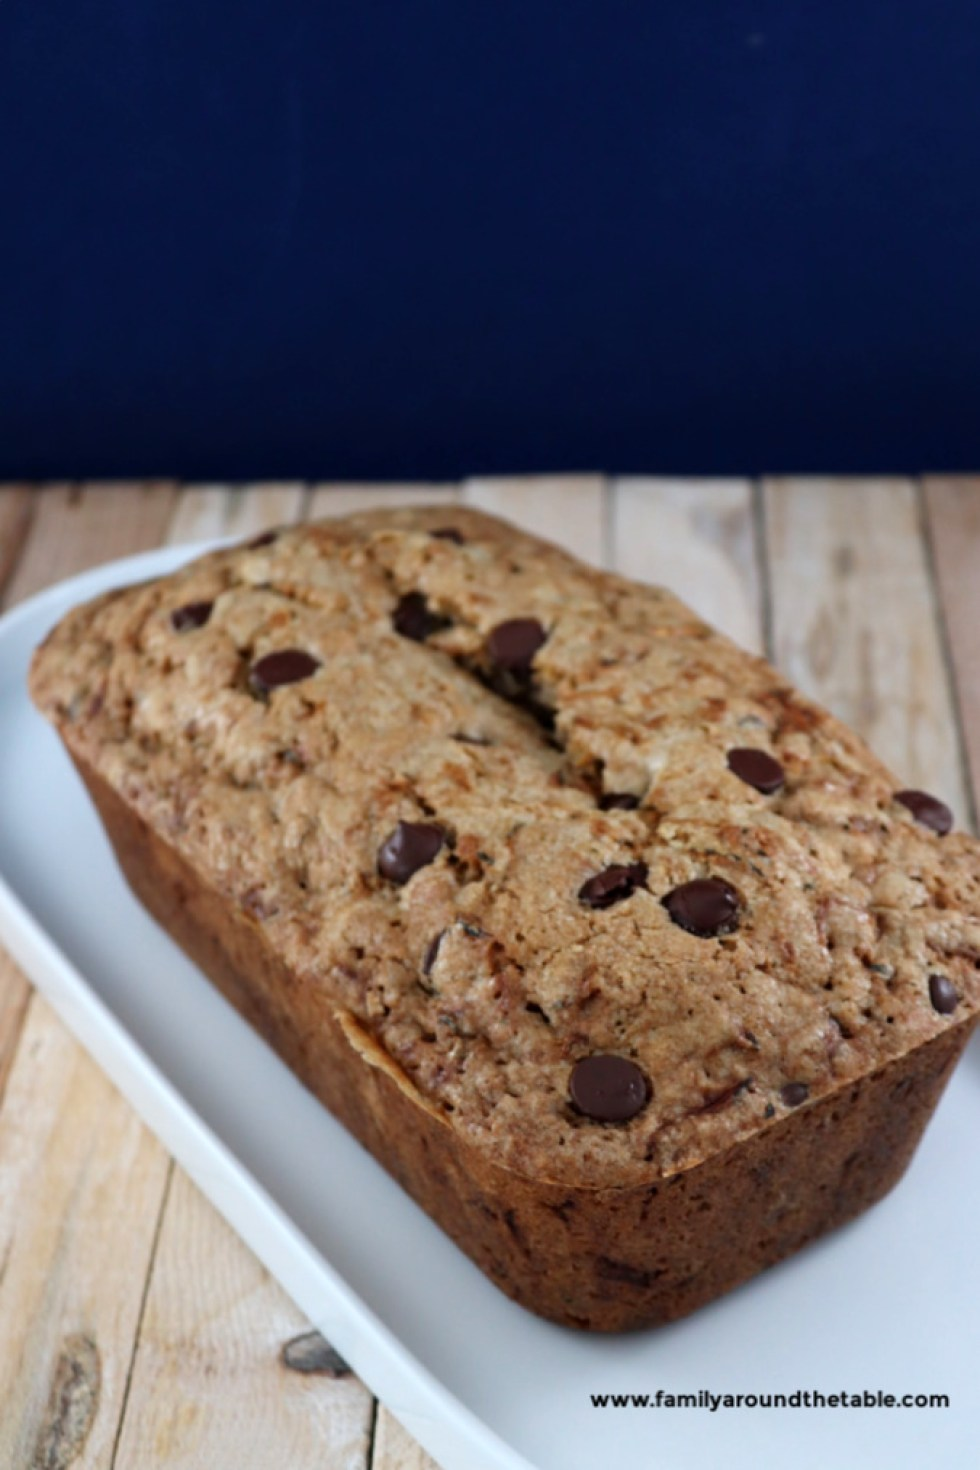 Chocolate chip zucchini bread on a white platter.